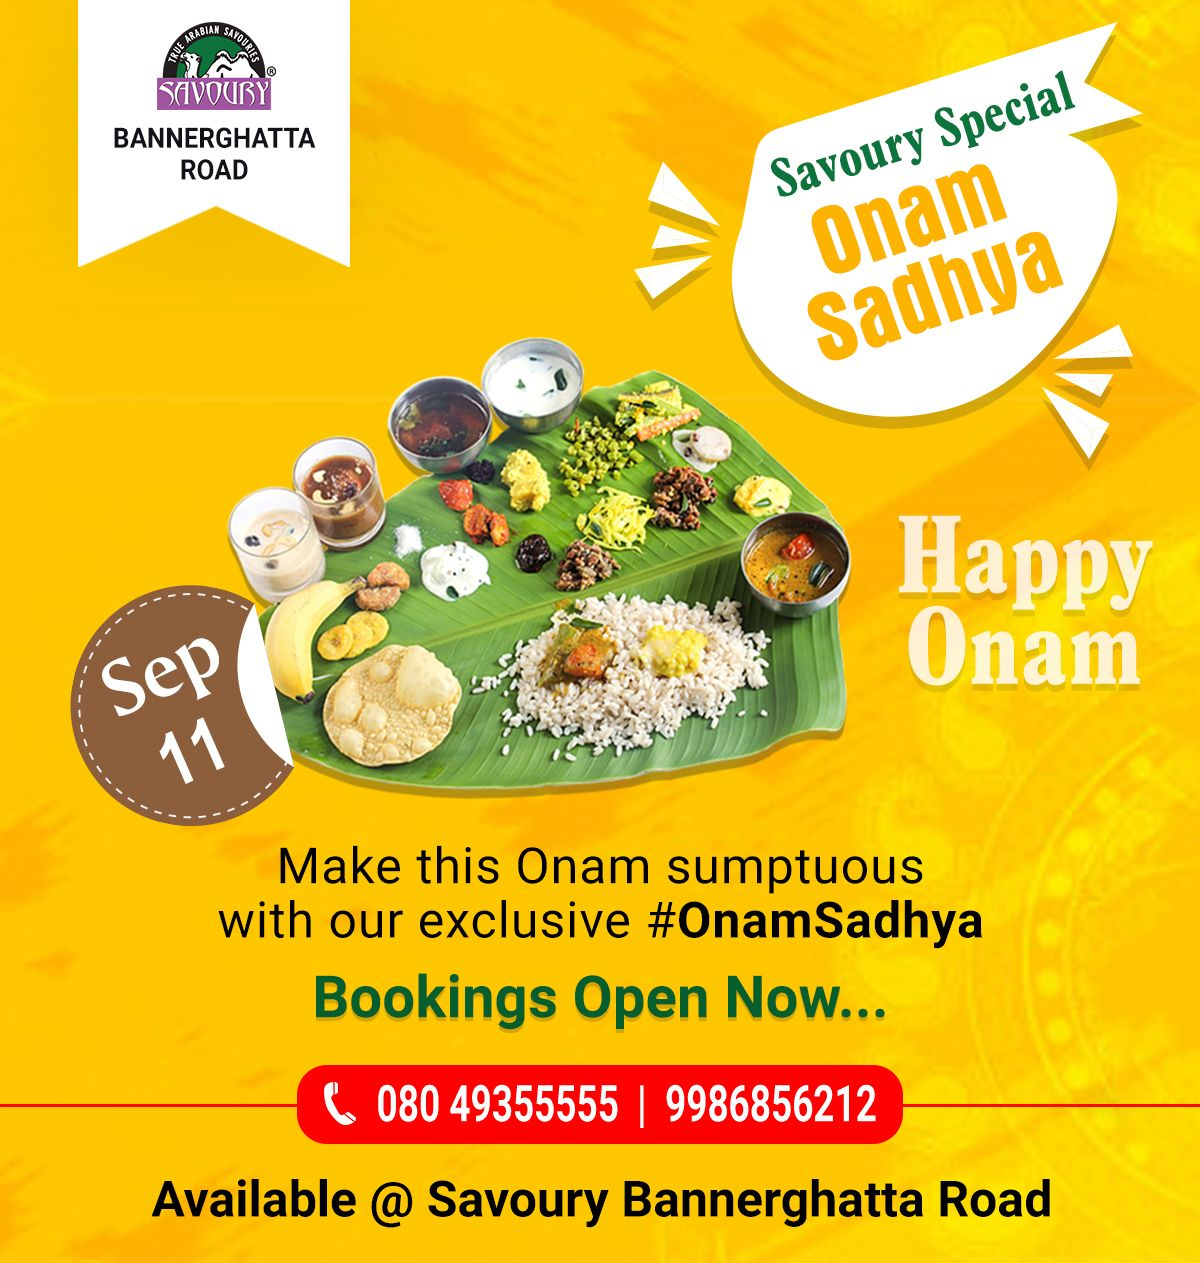 Celebrate Onam With Mouth Watering Onamsadhya From Savoury Restaurant Bannerghatta Road Exclusive Thiruvonam Sadhya Onam Sadhya Happy Onam Mouth Watering